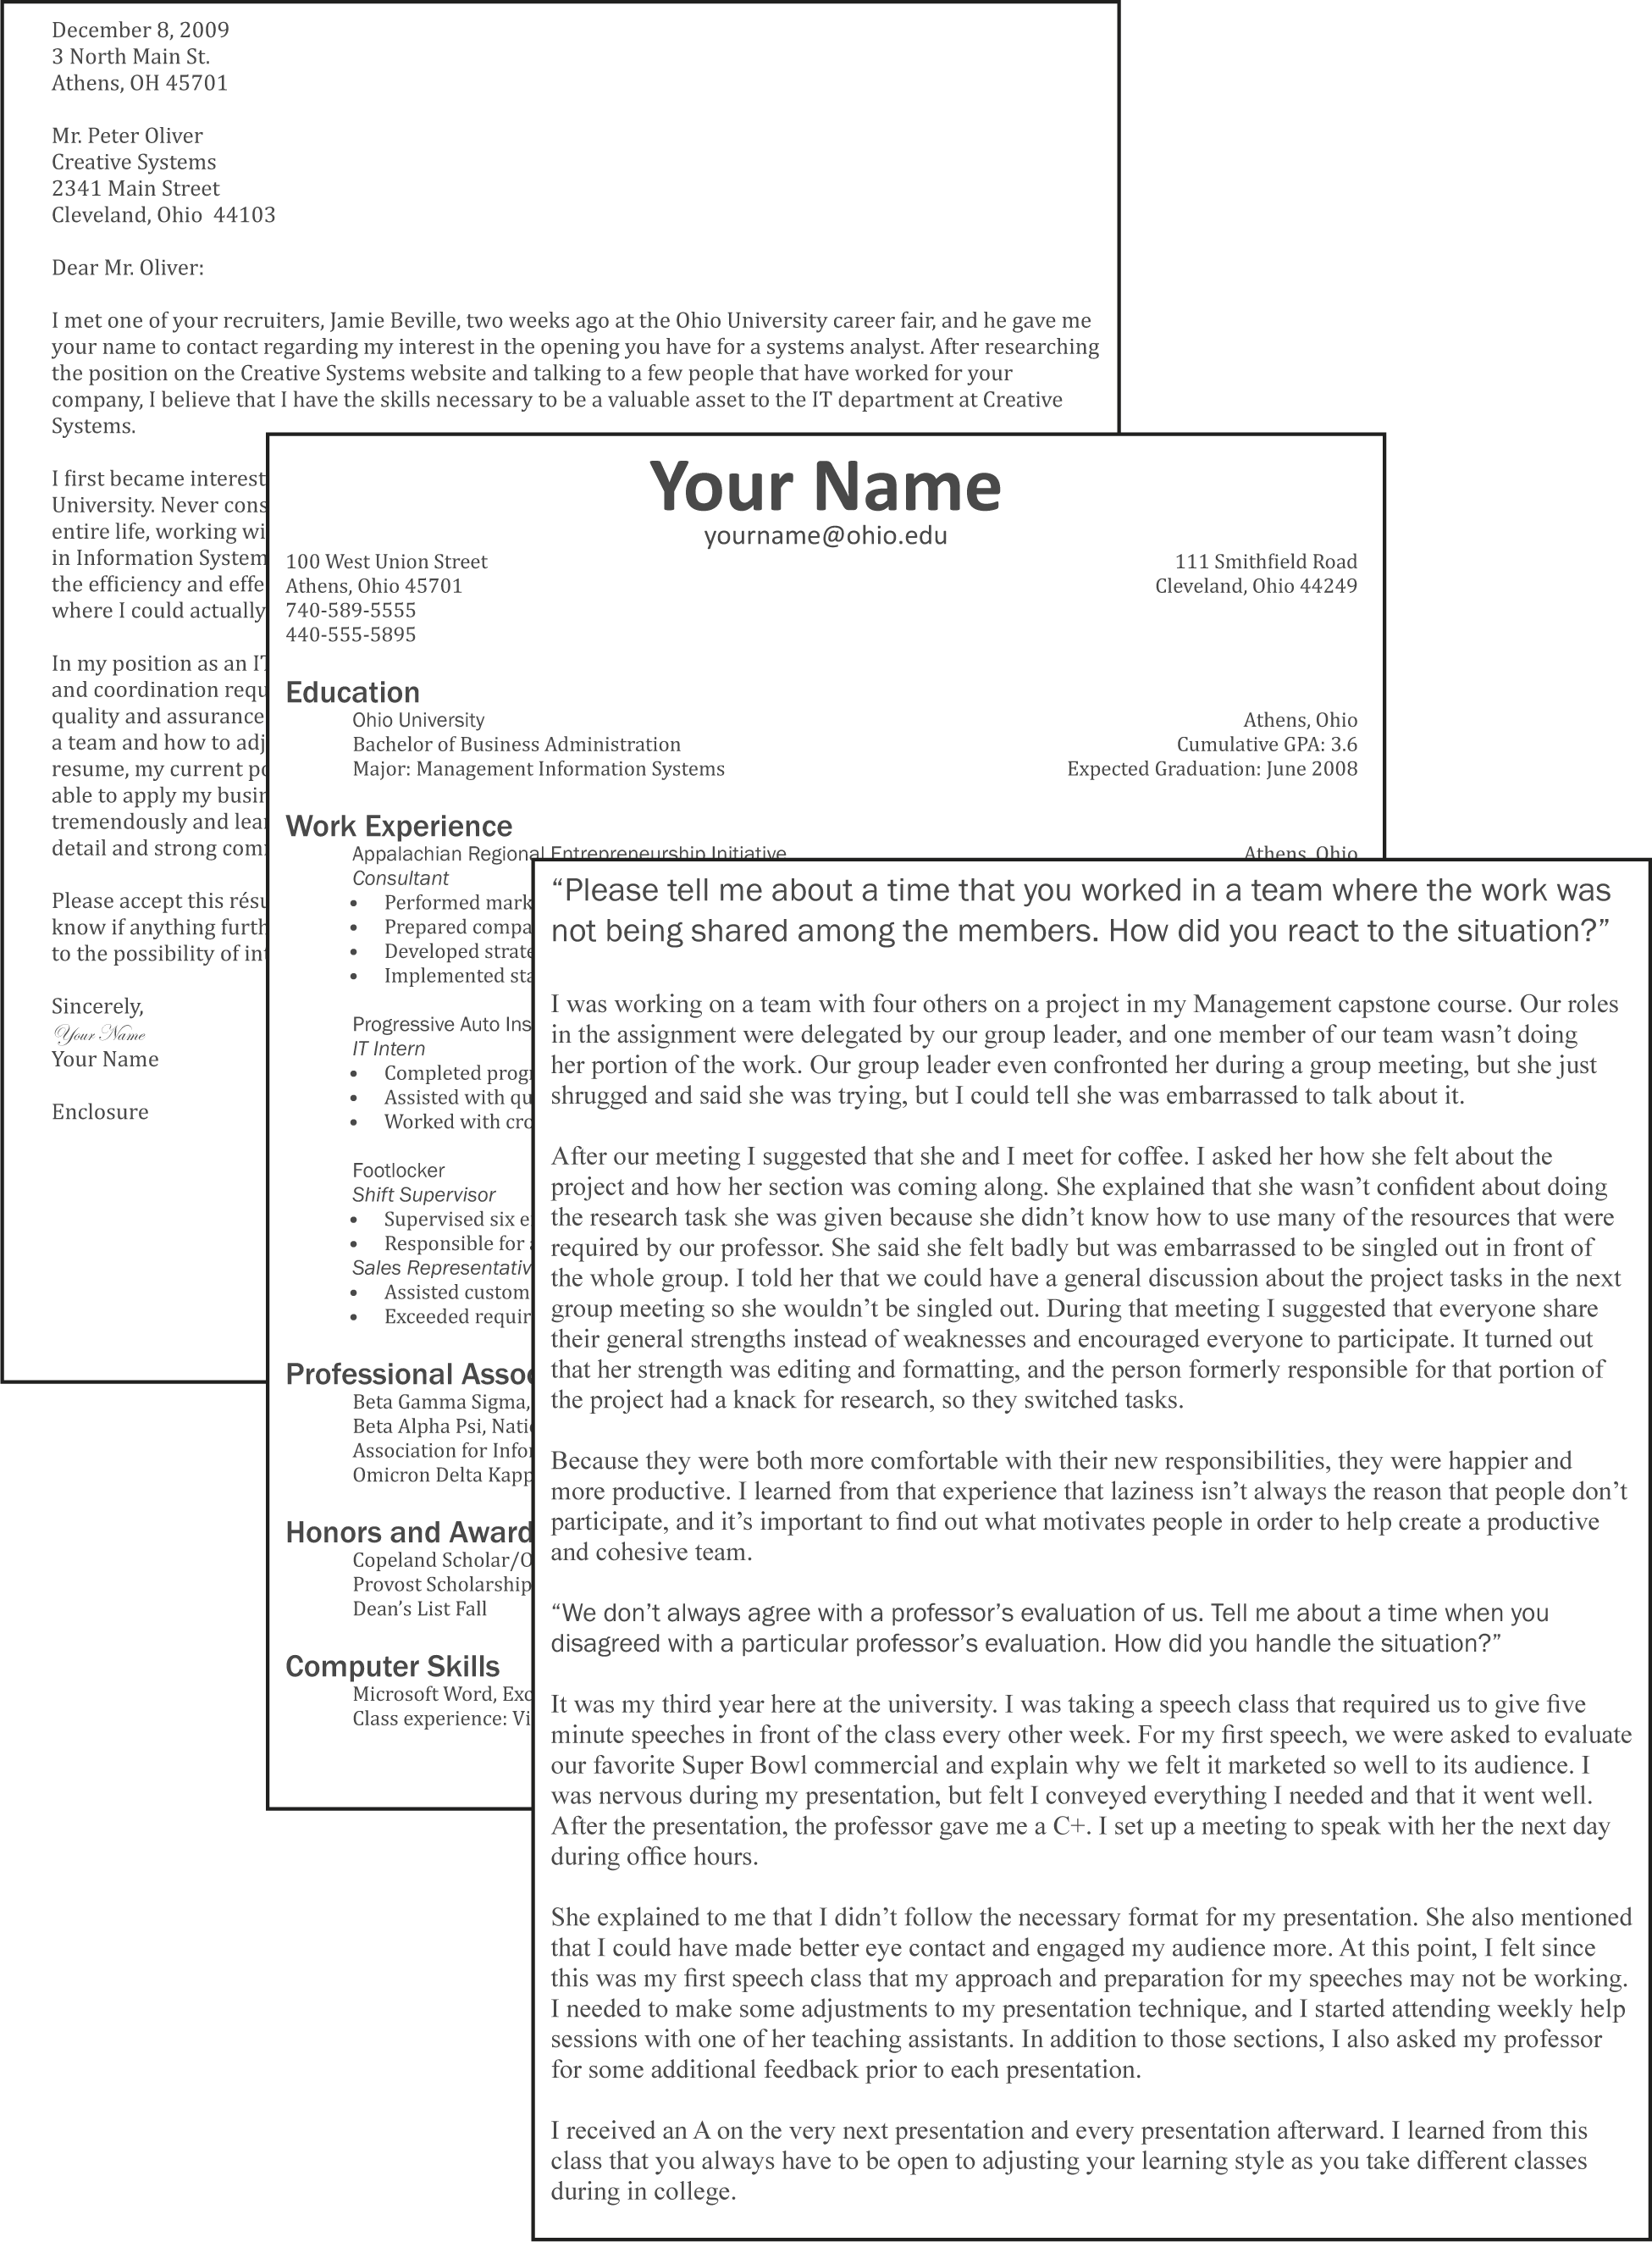 l3 assignment resume cover letter and interview - How Do You Make A Cover Letter For A Resume